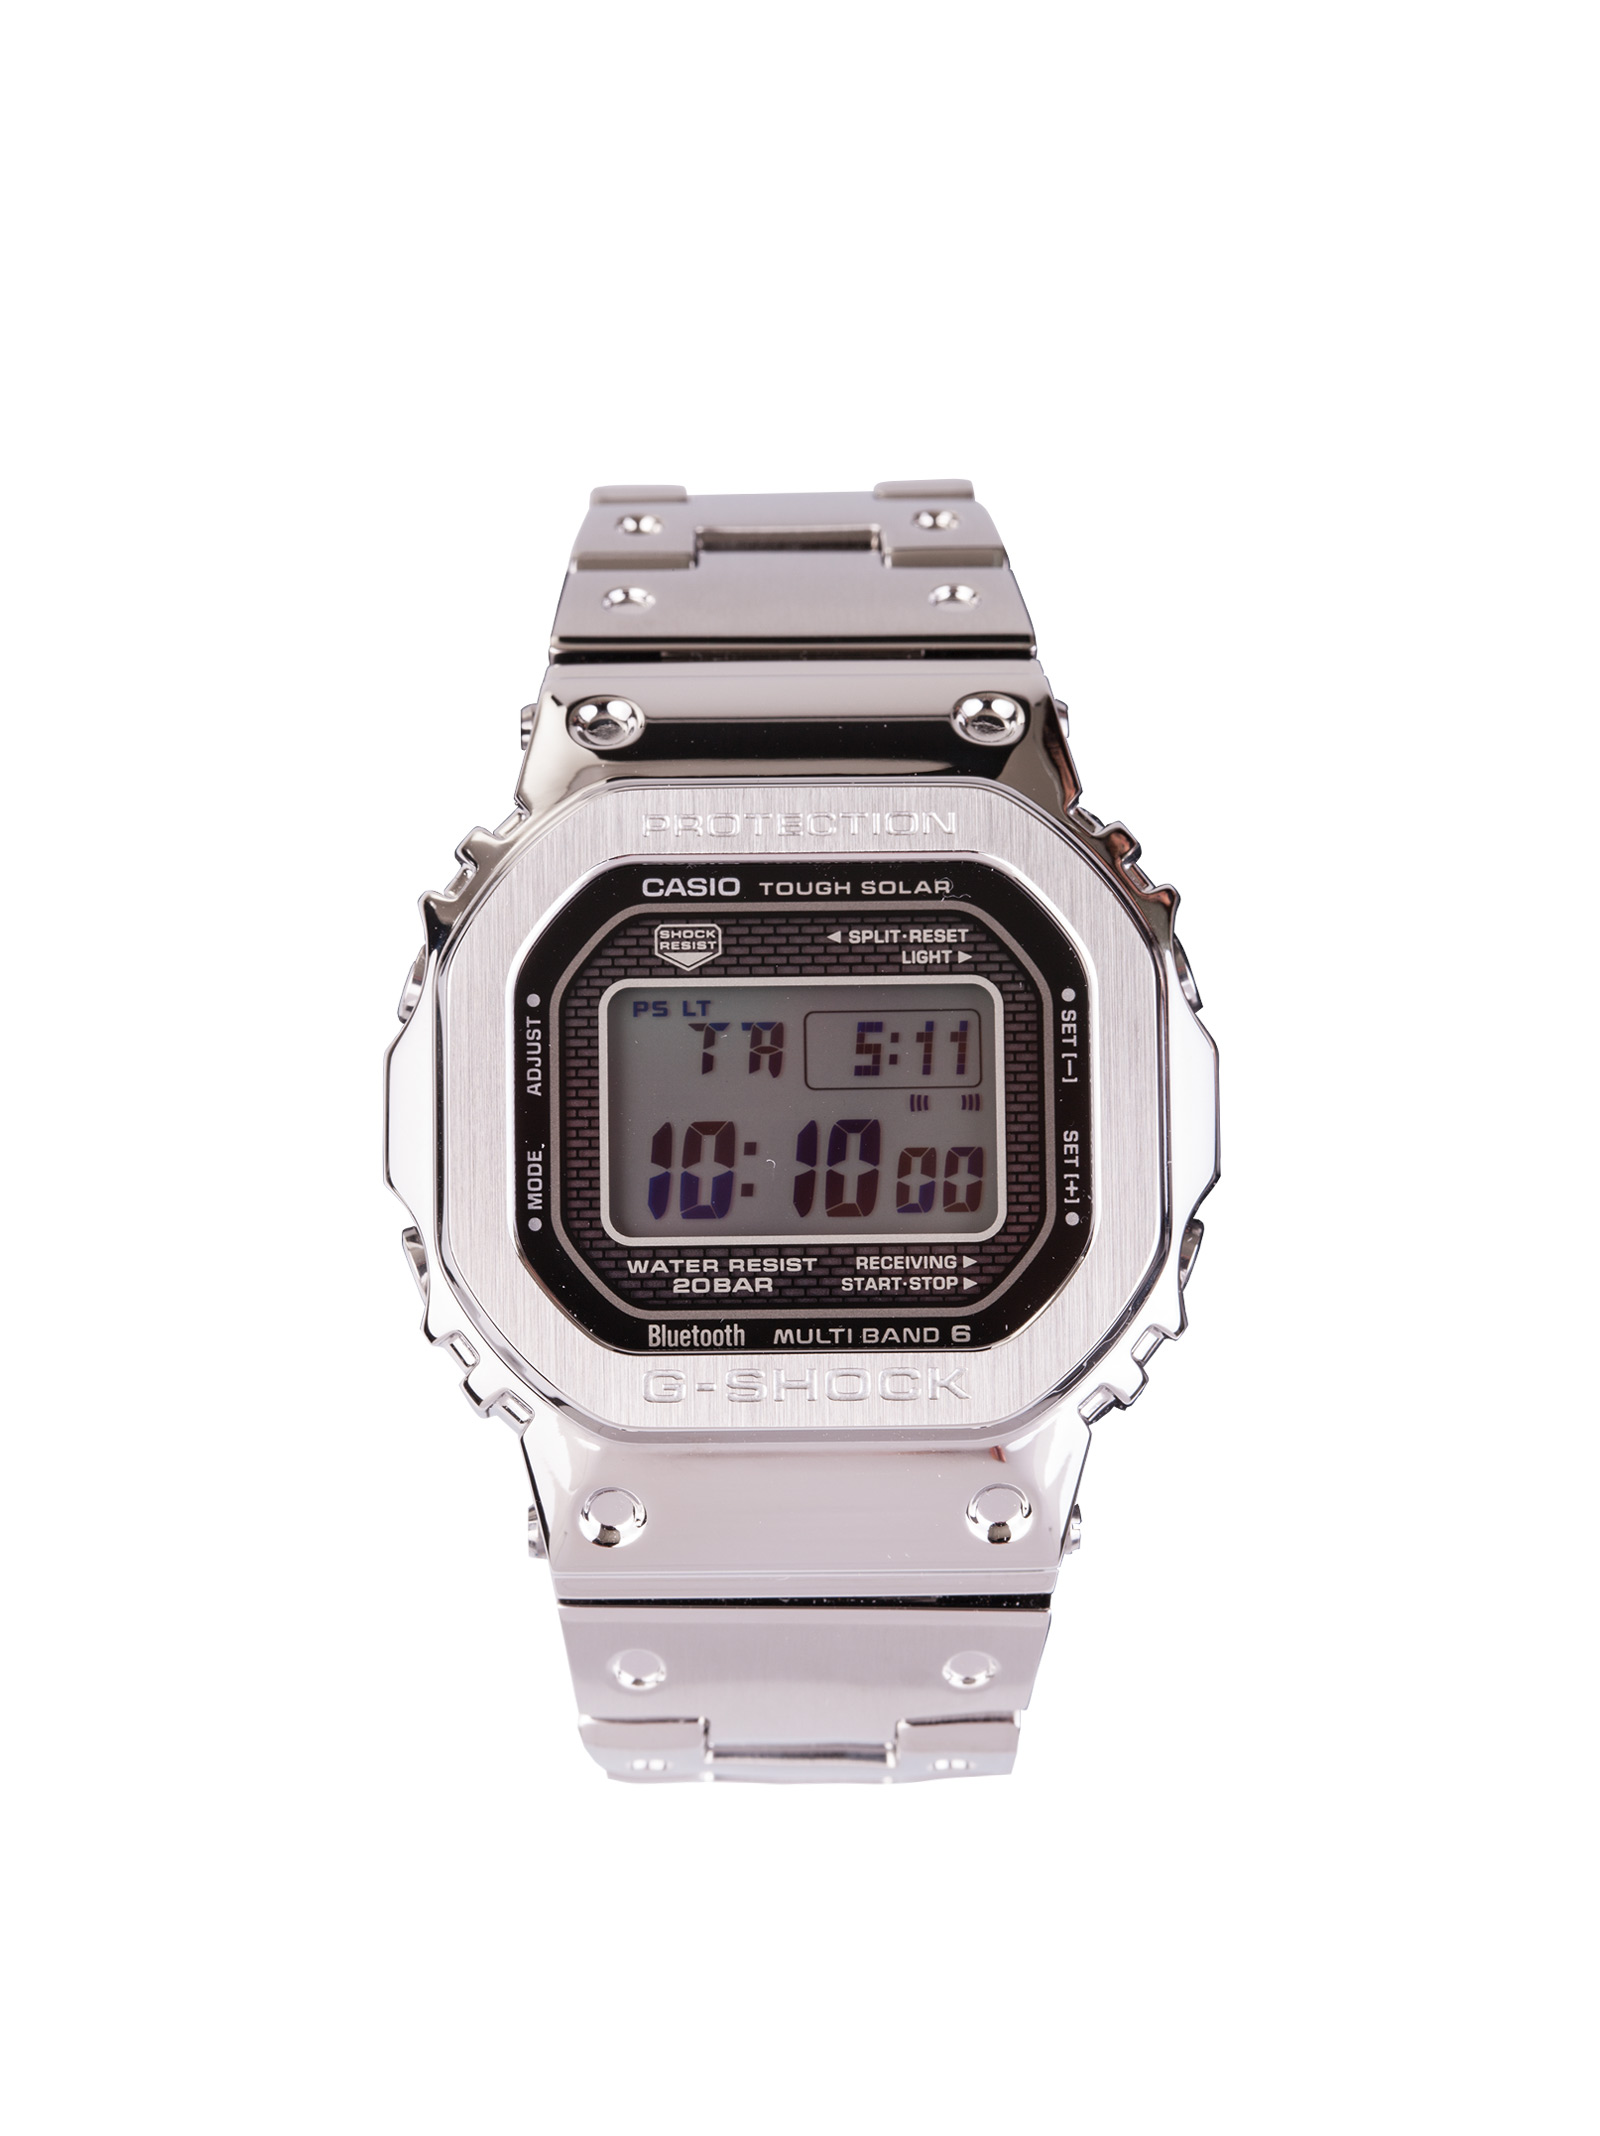 36b9b7d2b08 Casio G-Shock watch - CASIO G-SHOCK - Michele Franzese Moda